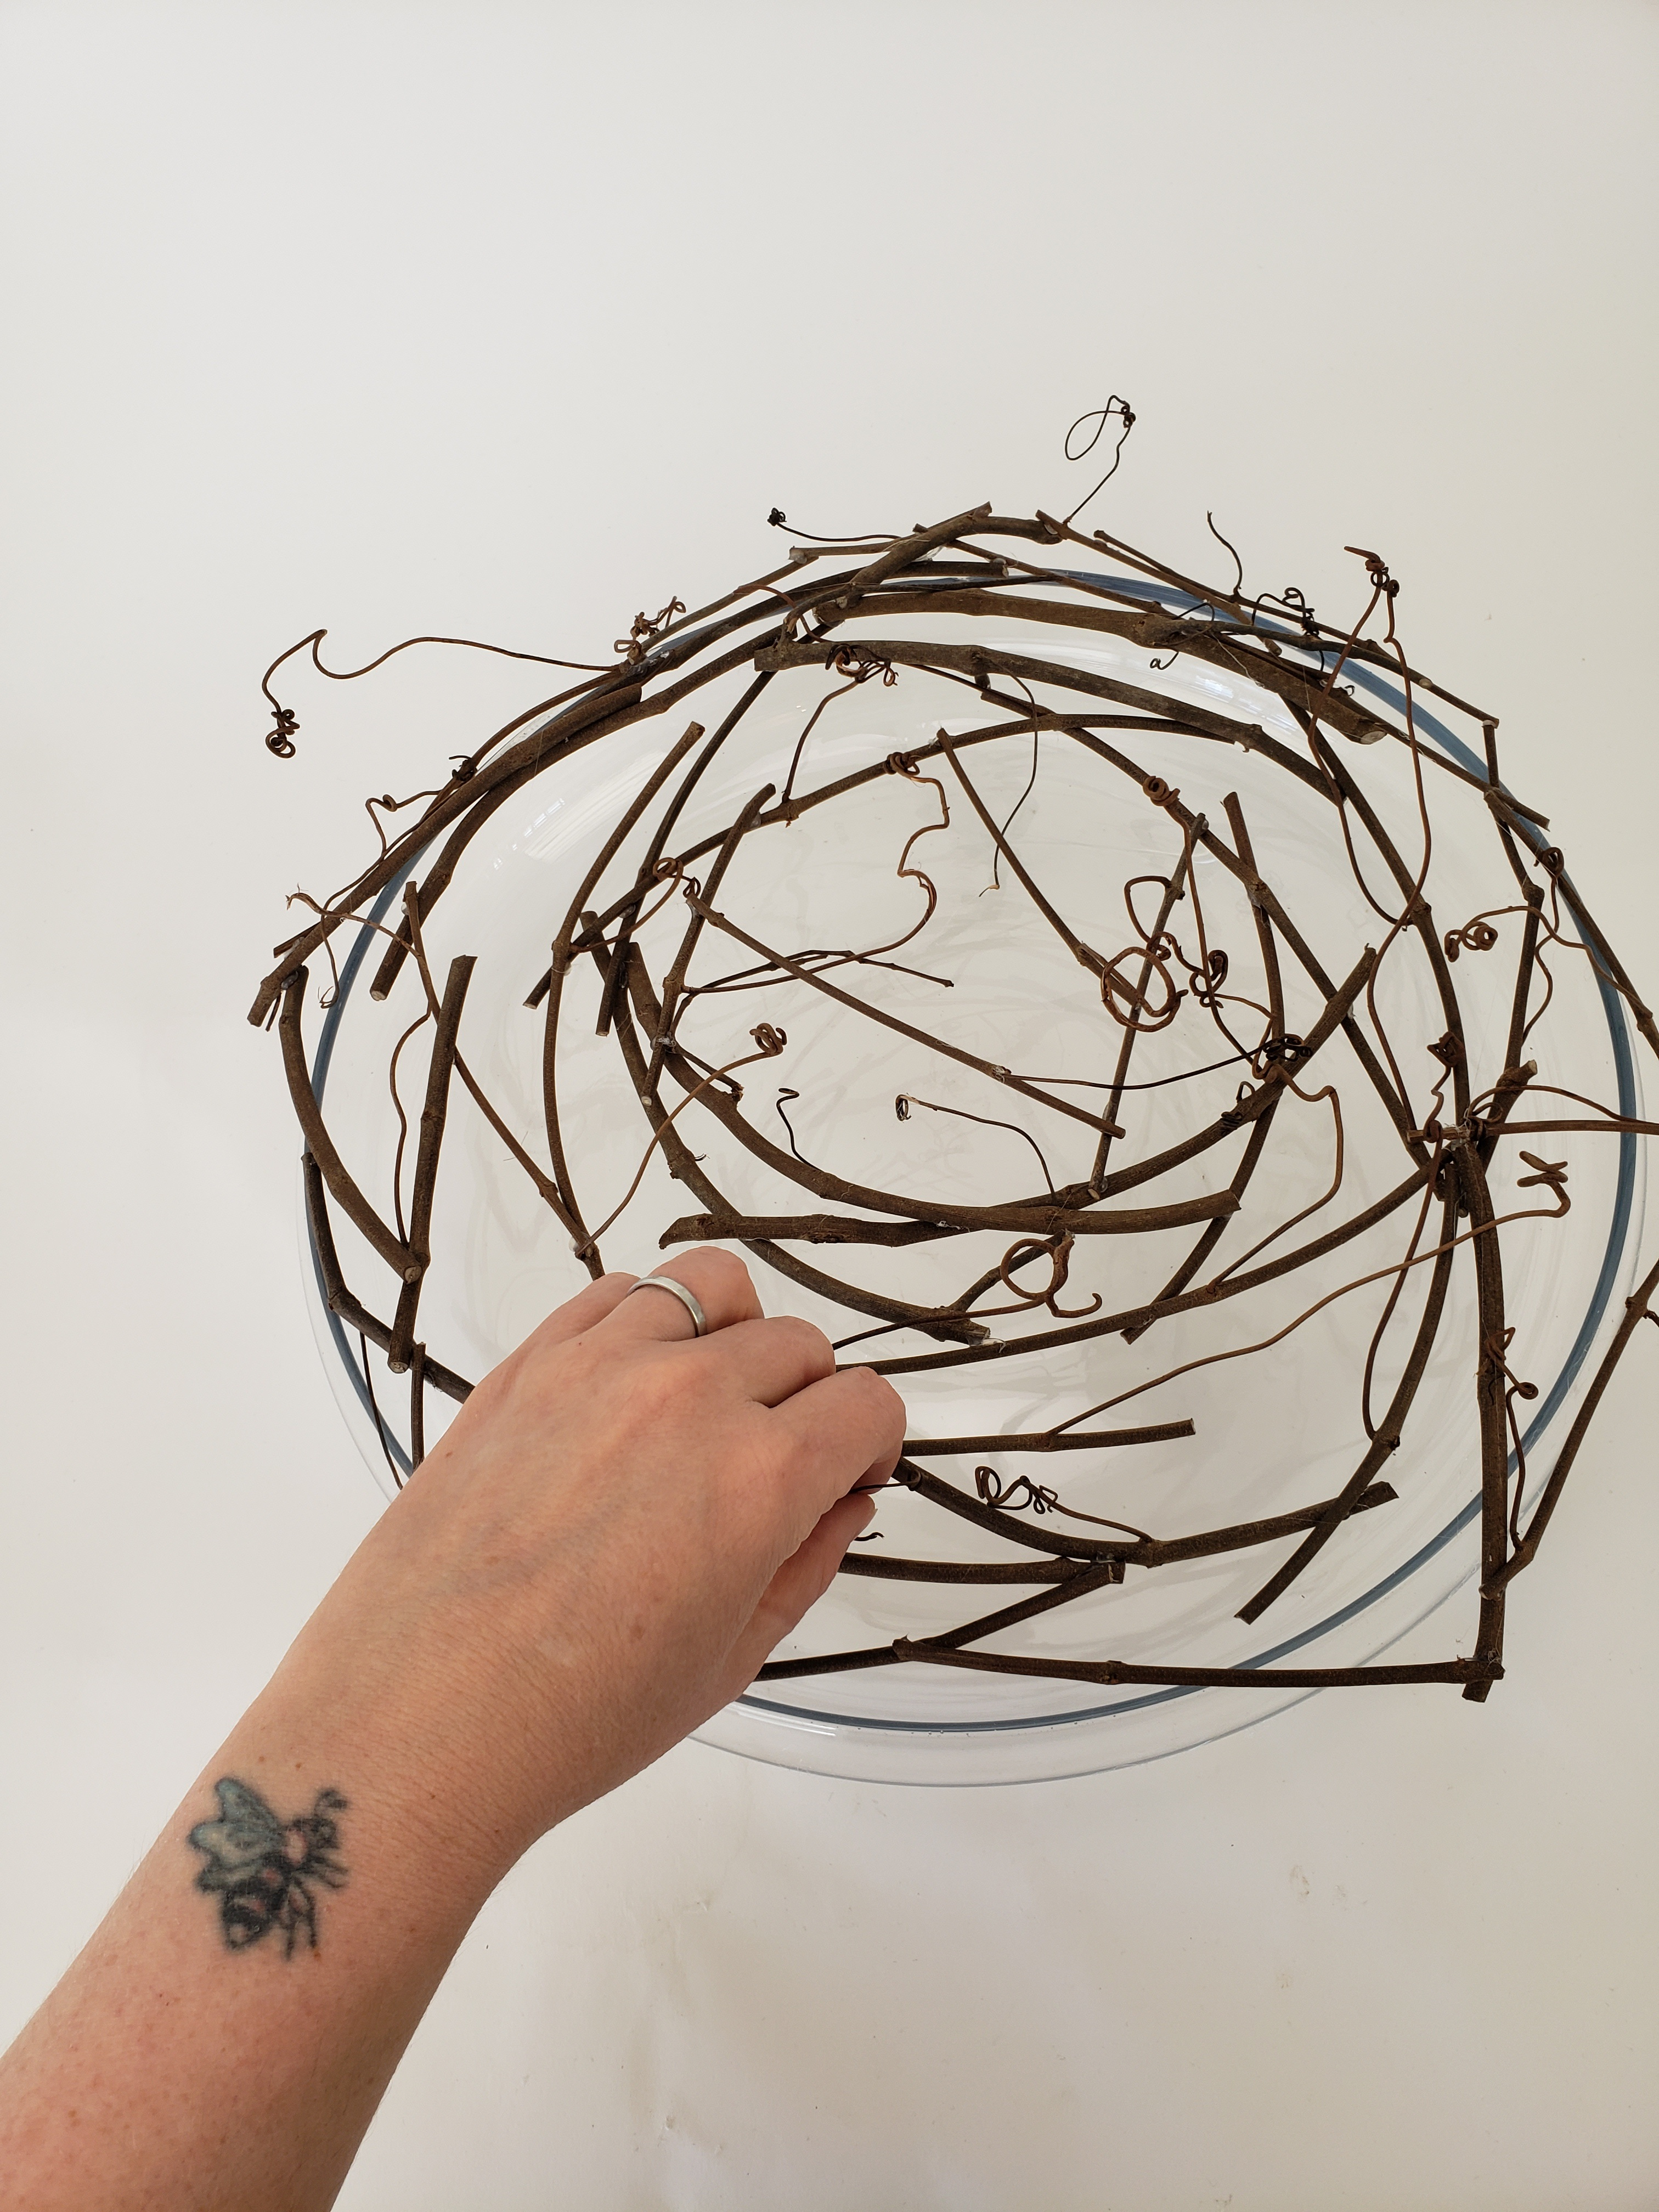 Glue a grapevine armature shaped like the petals of an open rose